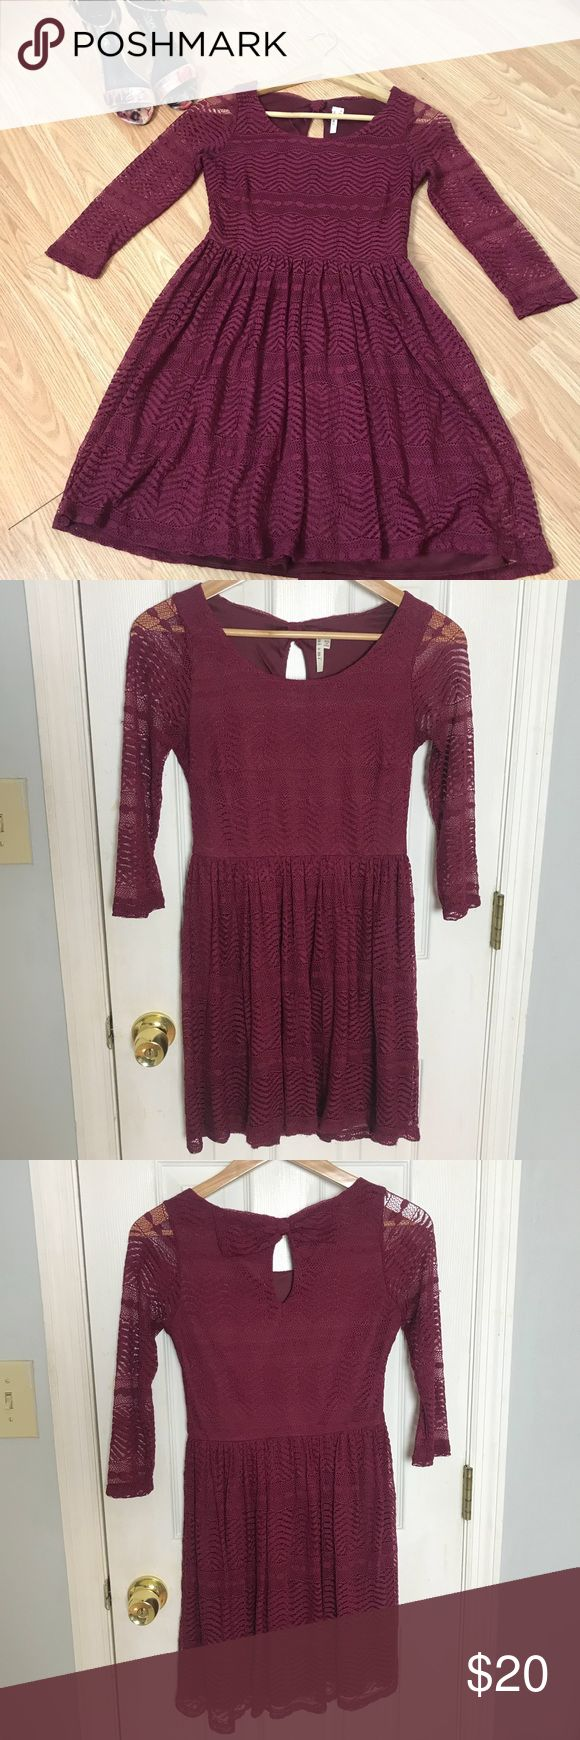 Wine Colored Bow Back Lace Dress - Empire Waist Hello Beautiful! :-)  This adorable wine-colored dress features an empire waist and A-line skirt which creates a beautiful silhouette.  Only worn a handful of times. Great condition!   Thanks for shopping! :-) miami Dresses Long Sleeve